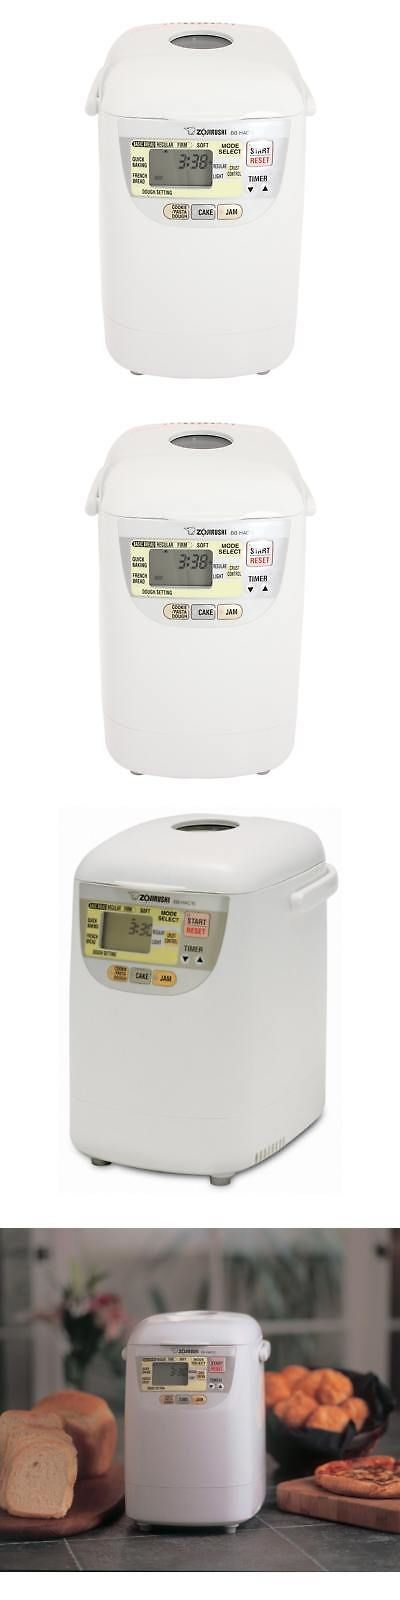 Bread Machines 20669: Zojirushi Bb-Hac10 Home Bakery 1-Pound Loaf Programmable Mini Breadmaker -> BUY IT NOW ONLY: $196.01 on eBay!